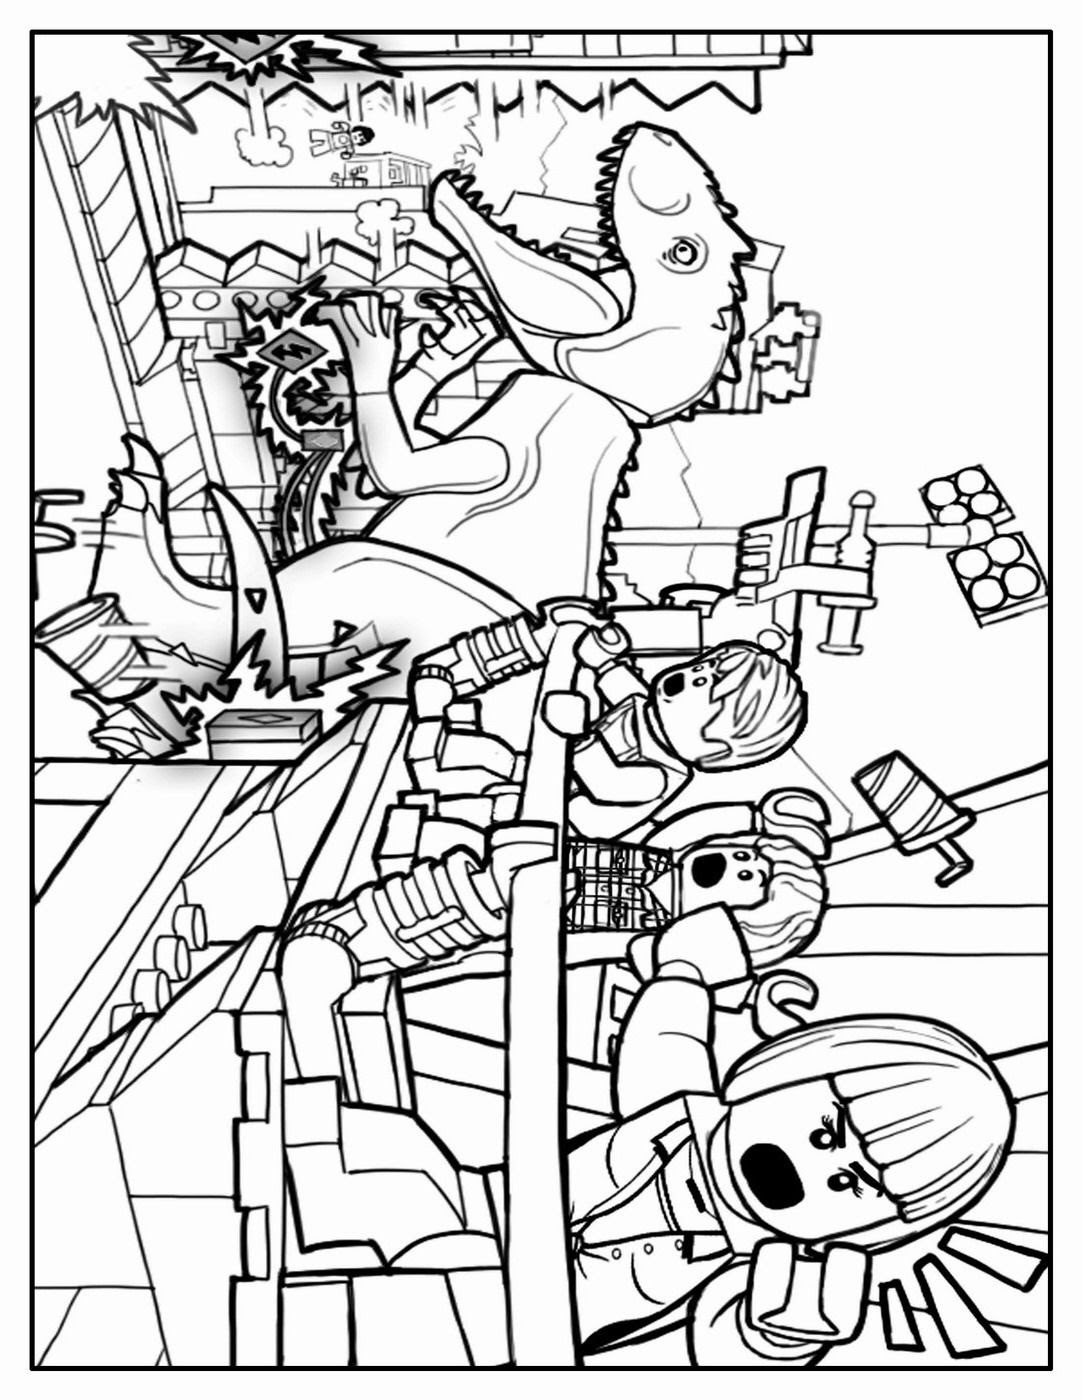 Trends For Printable Lego Jurassic World Coloring Pages Anyoneforanyateam